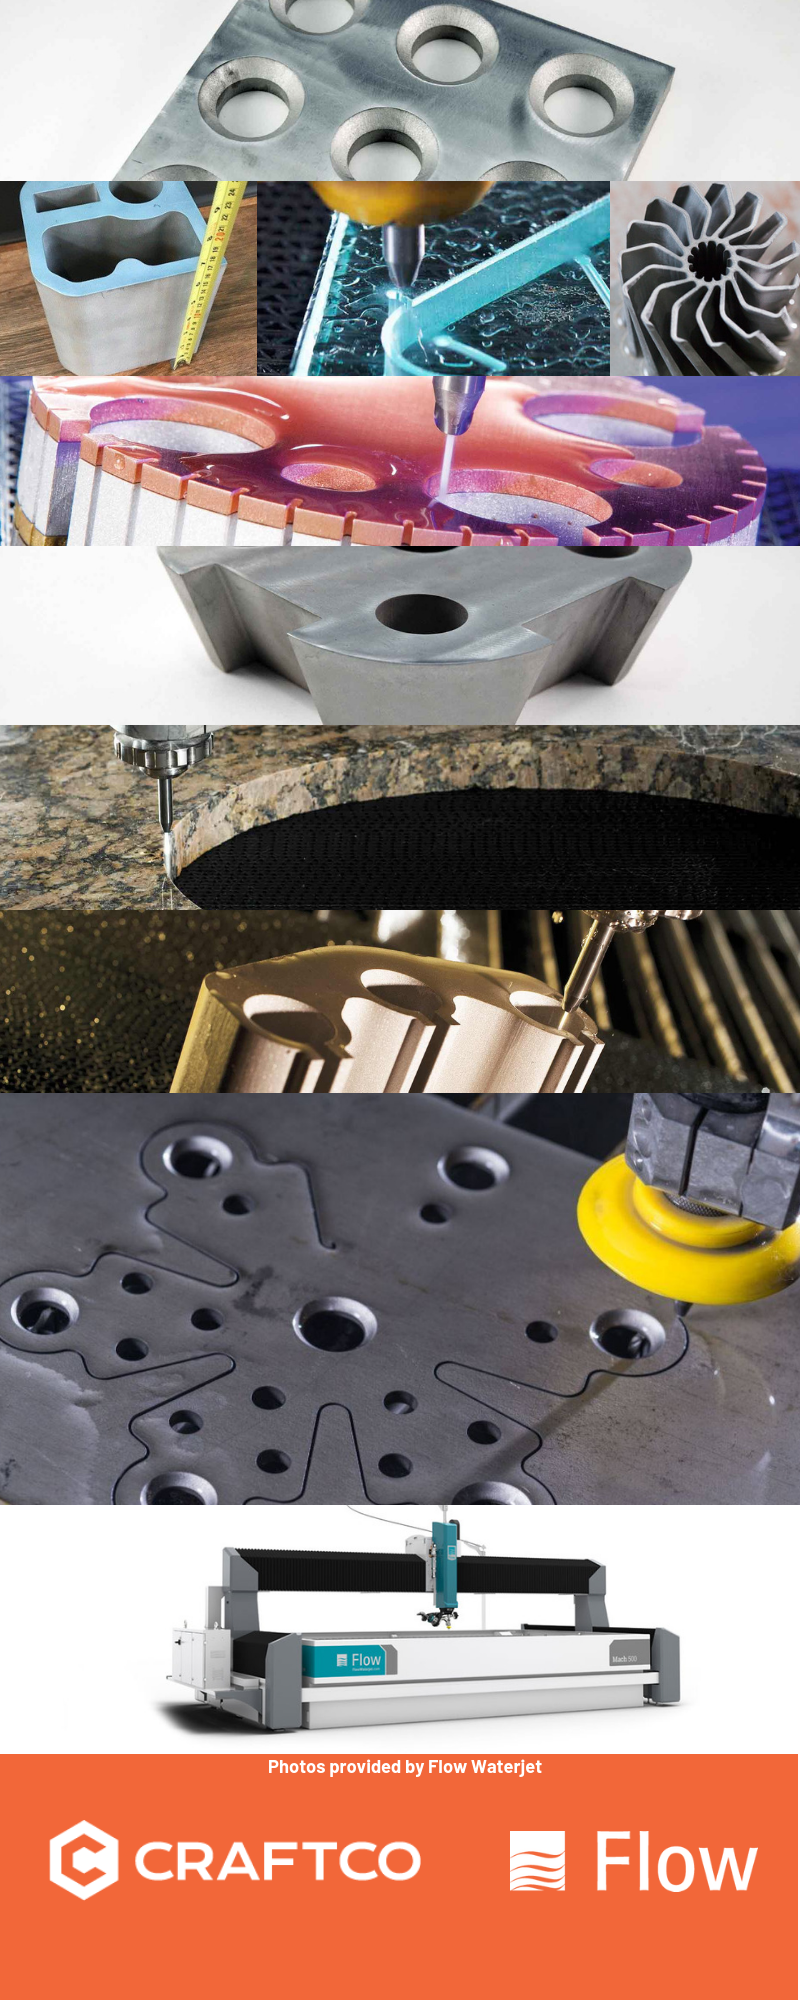 CRAFTCO'S WATERJET CUTTING SERVICES - Craftco